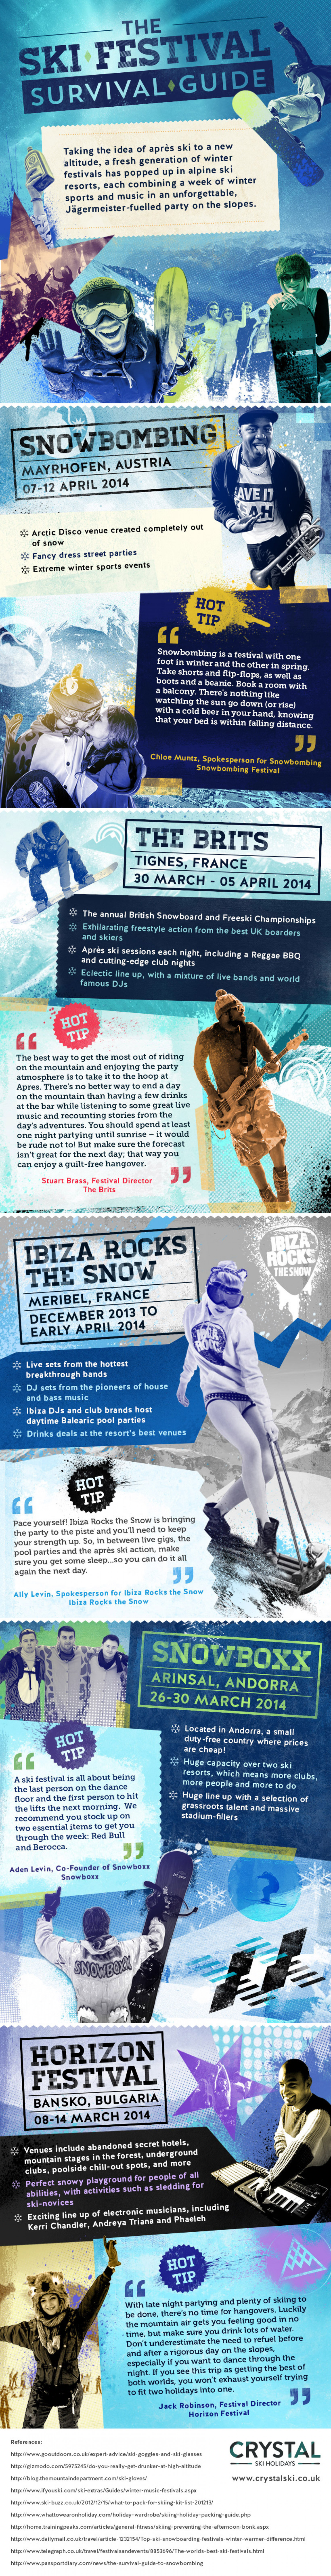 The Ultimate Ski Festival Survival Guide Infographic